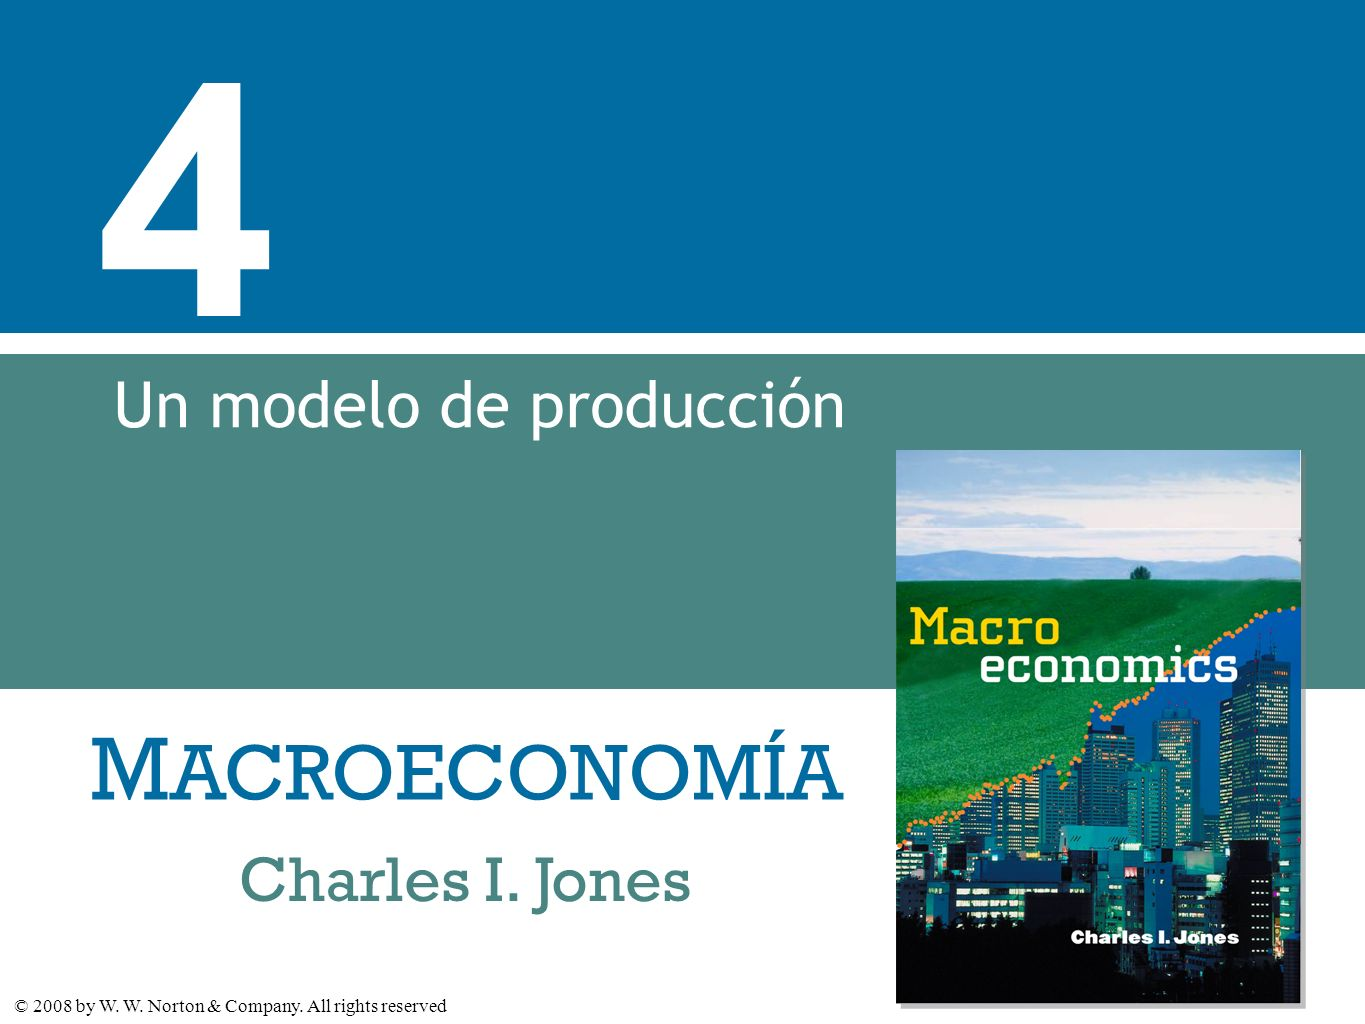 M ACROECONOMÍA © 2008 by W. W. Norton & Company. All rights reserved Charles I. Jones 4 Un modelo de producción